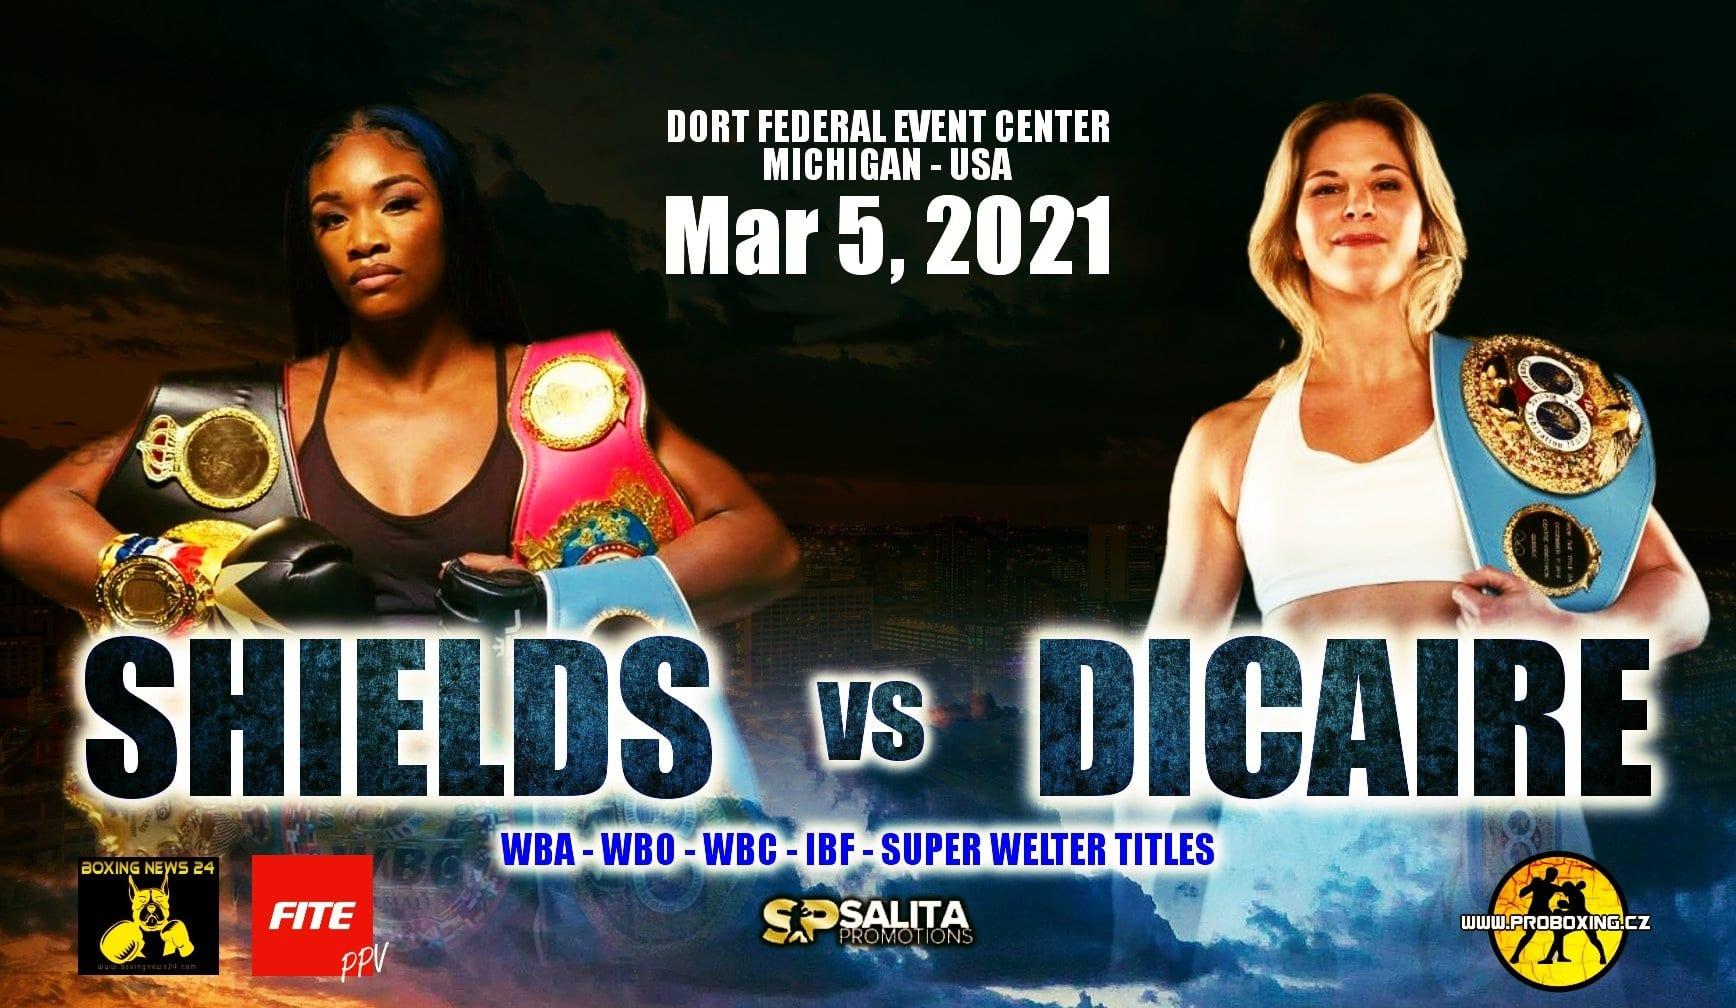 Shields vs Dicaire  - FITE TV - March 5